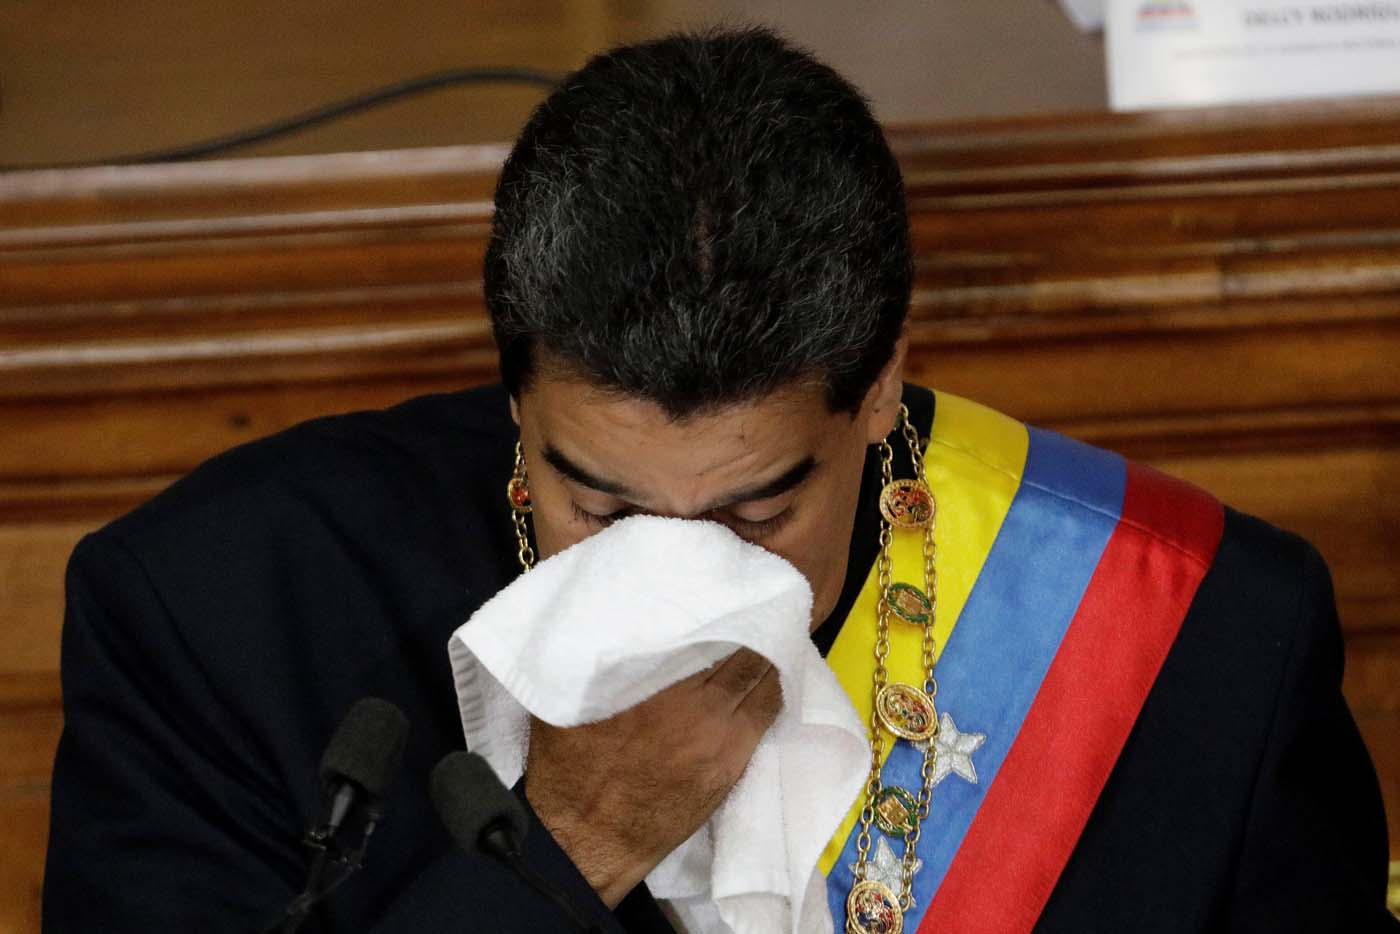 Venezuela's President Nicolas Maduro wipes the sweat from his face during a session of the National Constituent Assembly at Palacio Federal Legislativo in Caracas, Venezuela August 10, 2017. REUTERS/Ueslei Marcelino